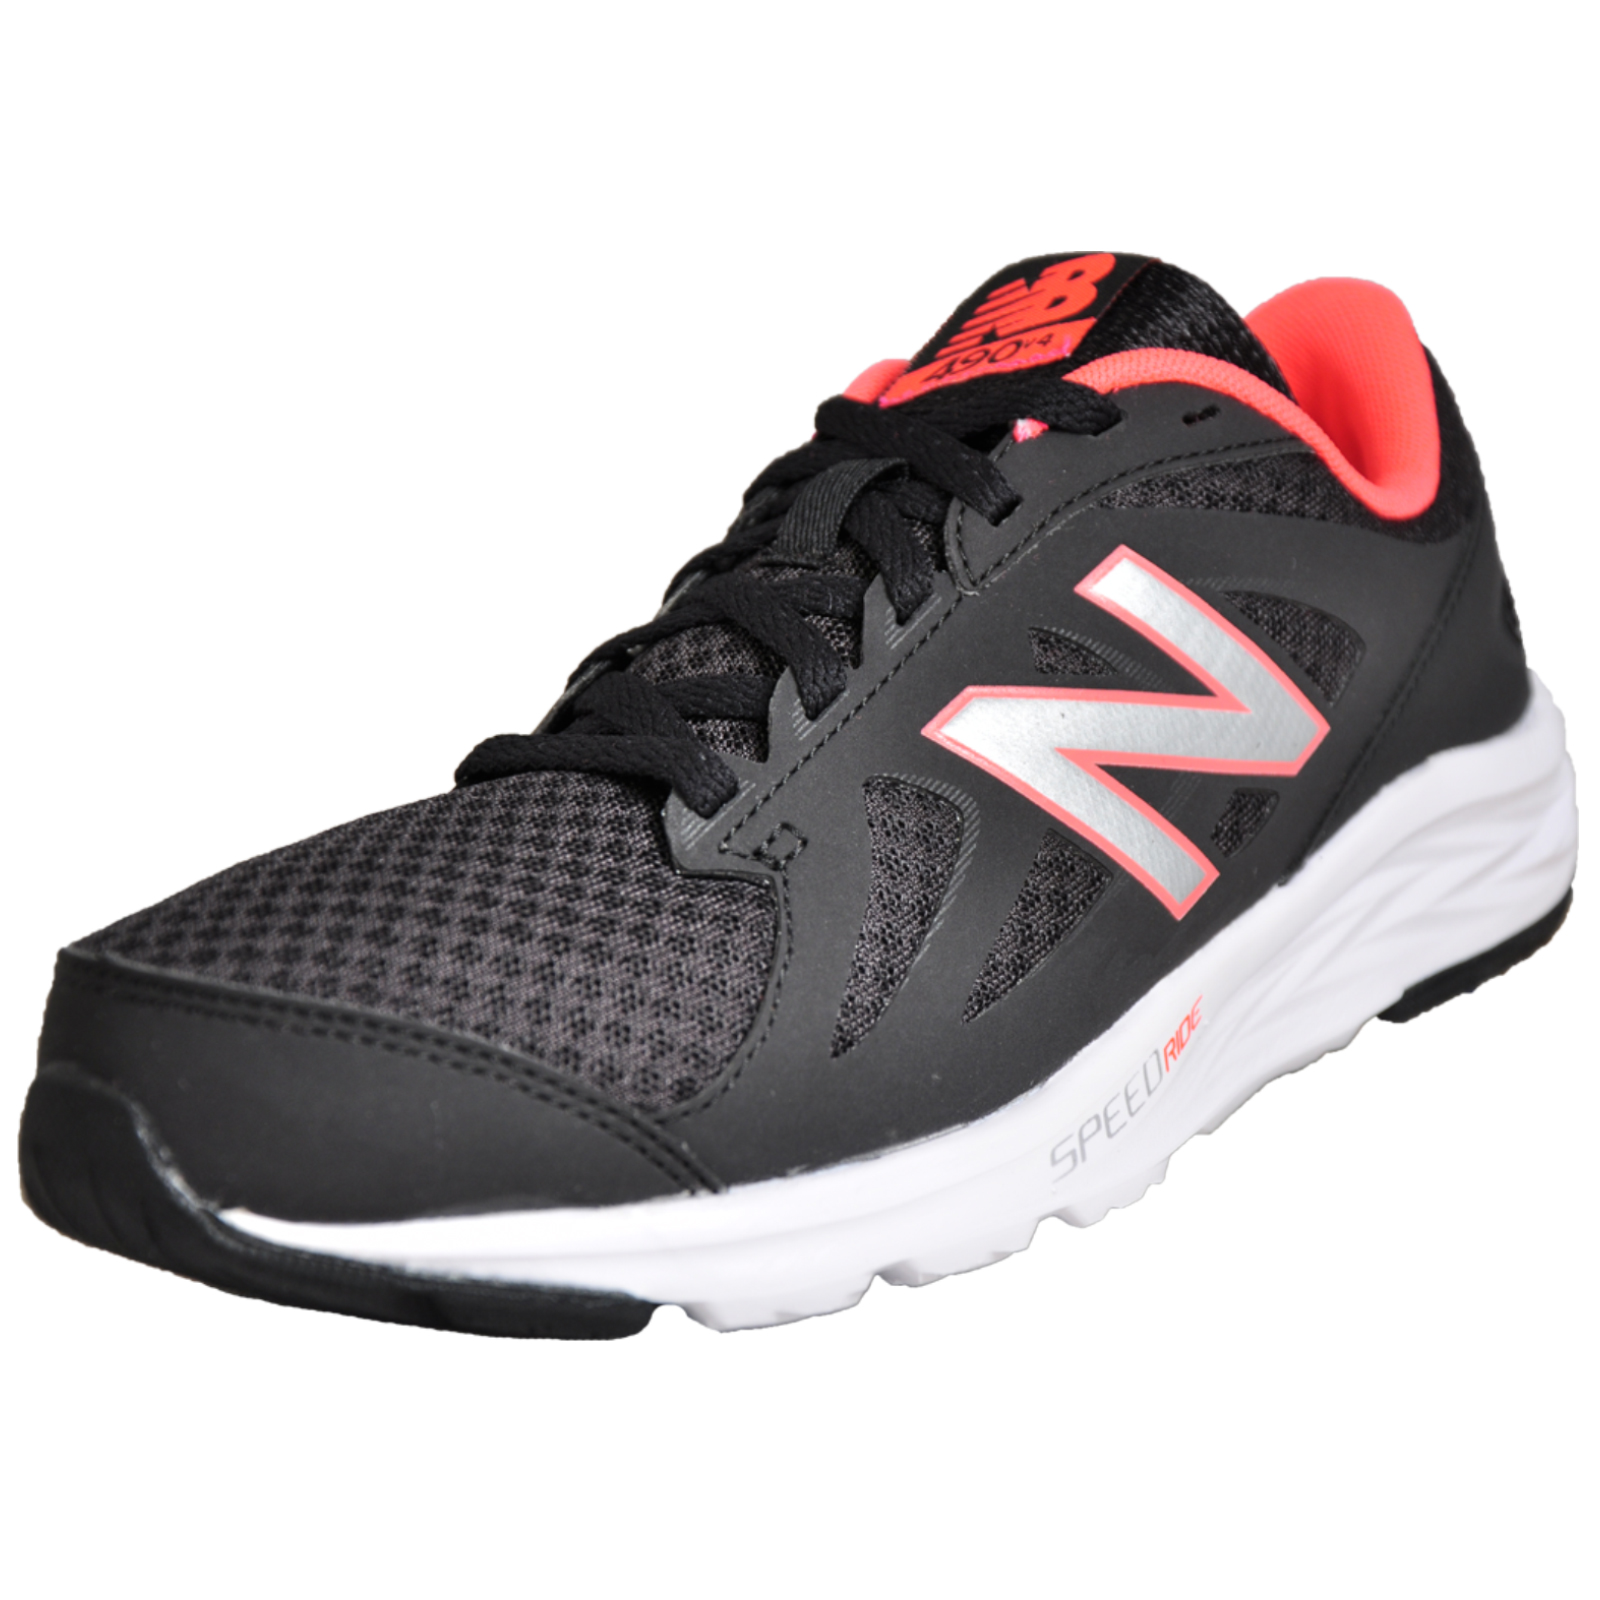 988c766761249 Details about New Balance 490 v4 Women's Running Shoes Fitness Gym Trainers  Black